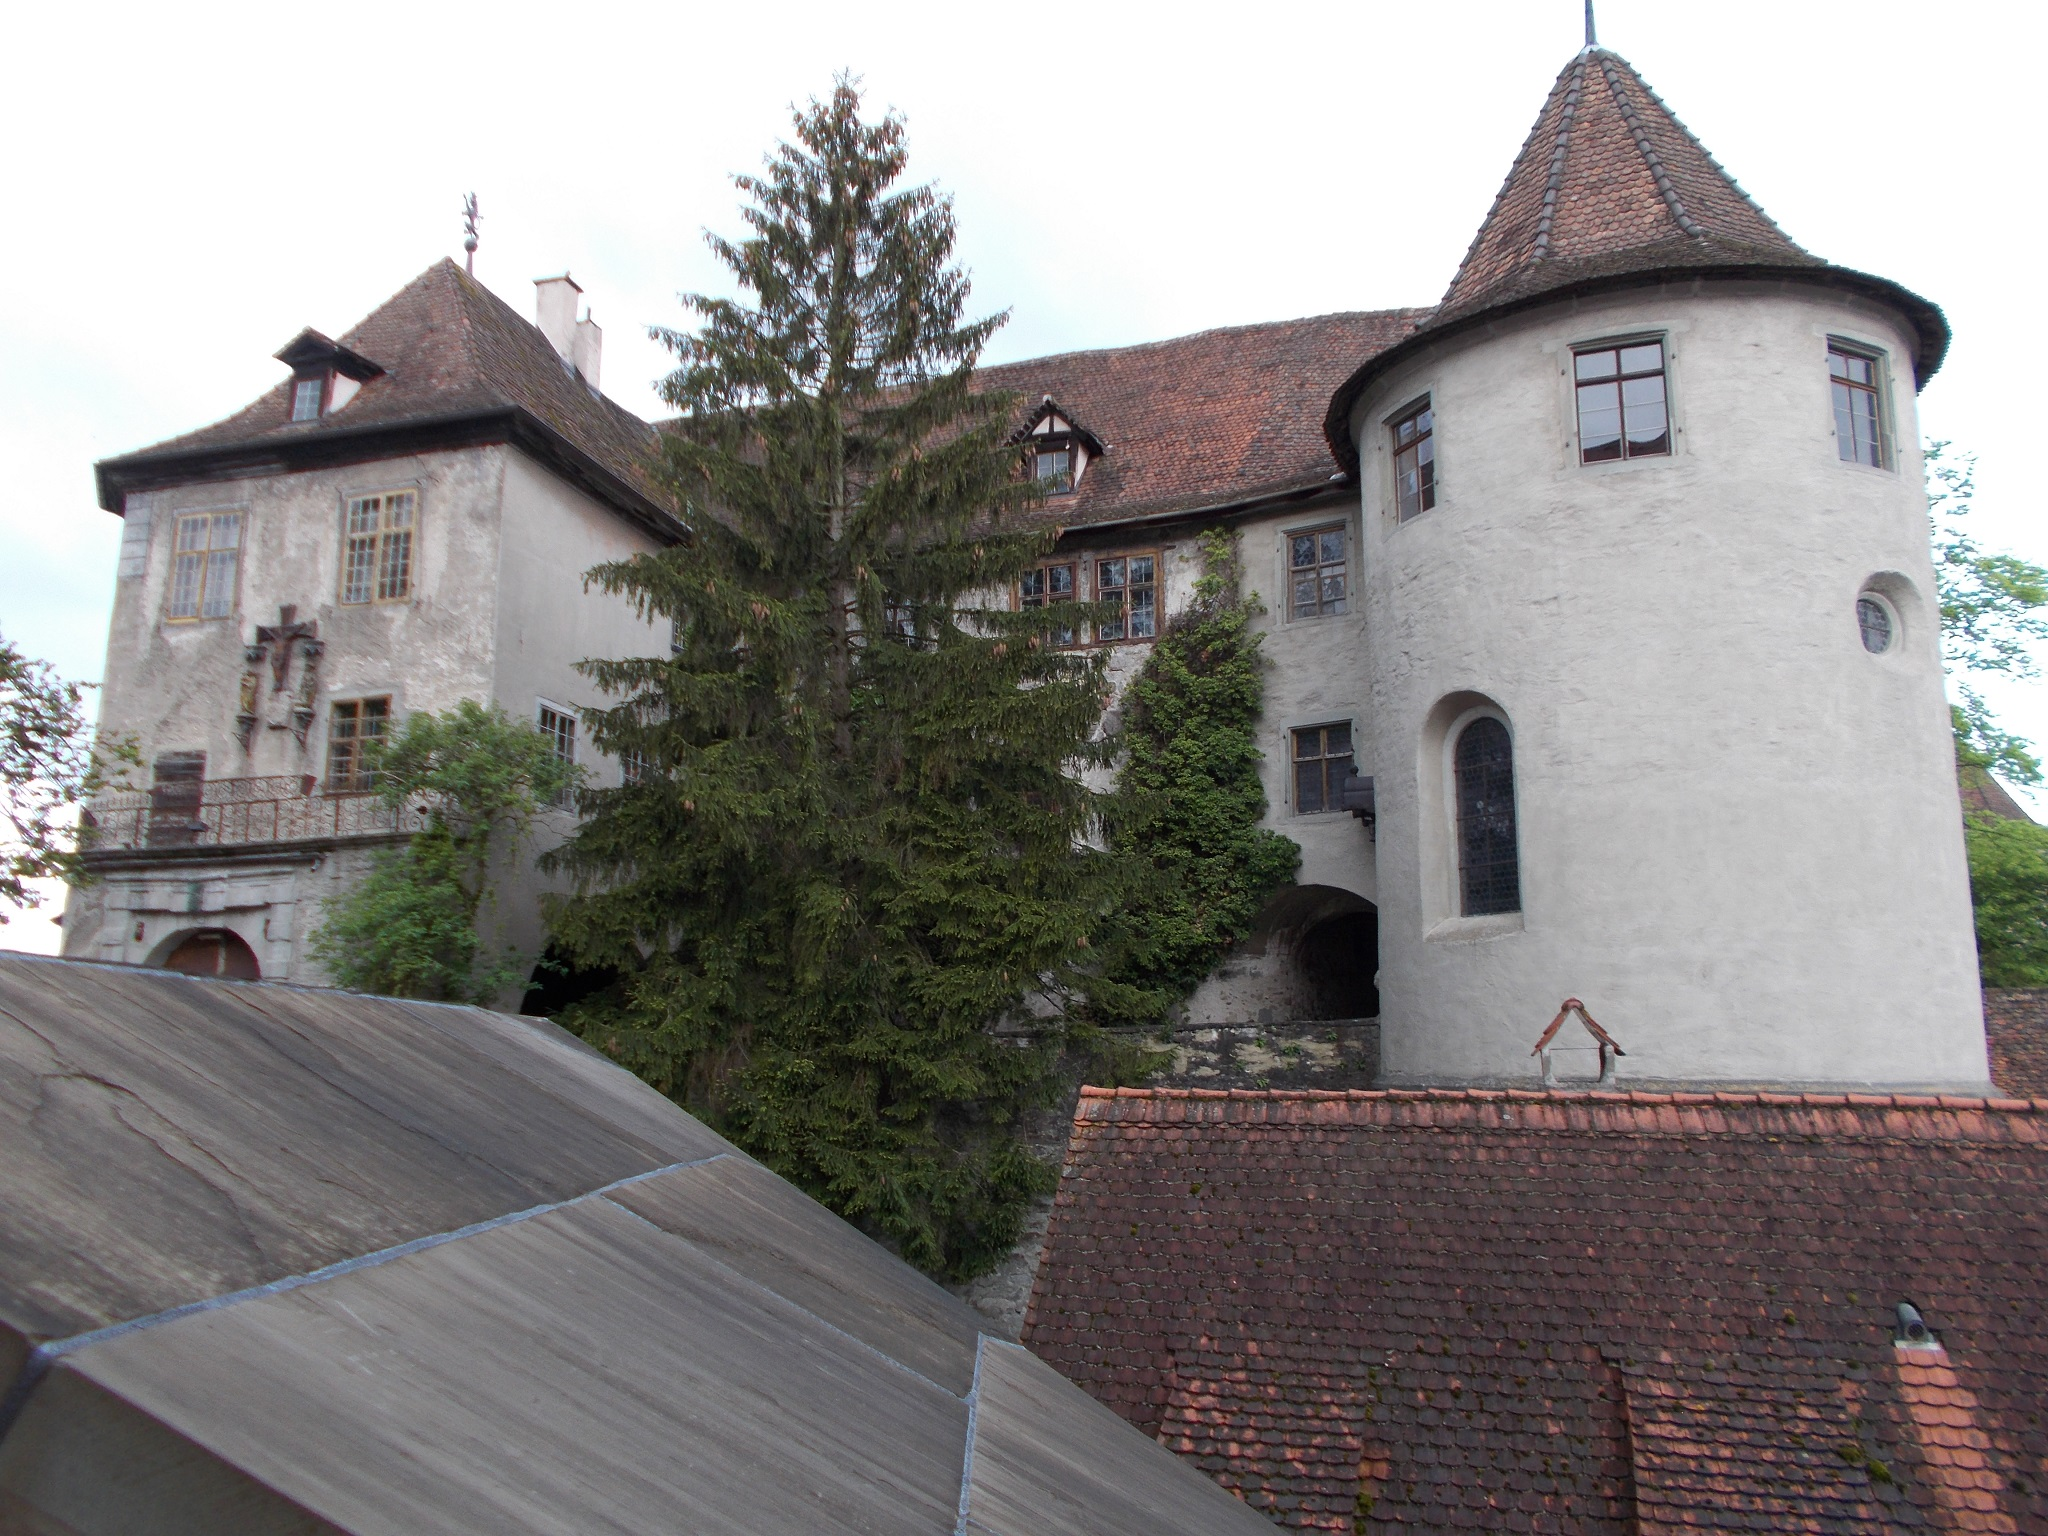 A snapshot of a well maintained castle with a huge tree in the foreground. Meersburg, Germany.